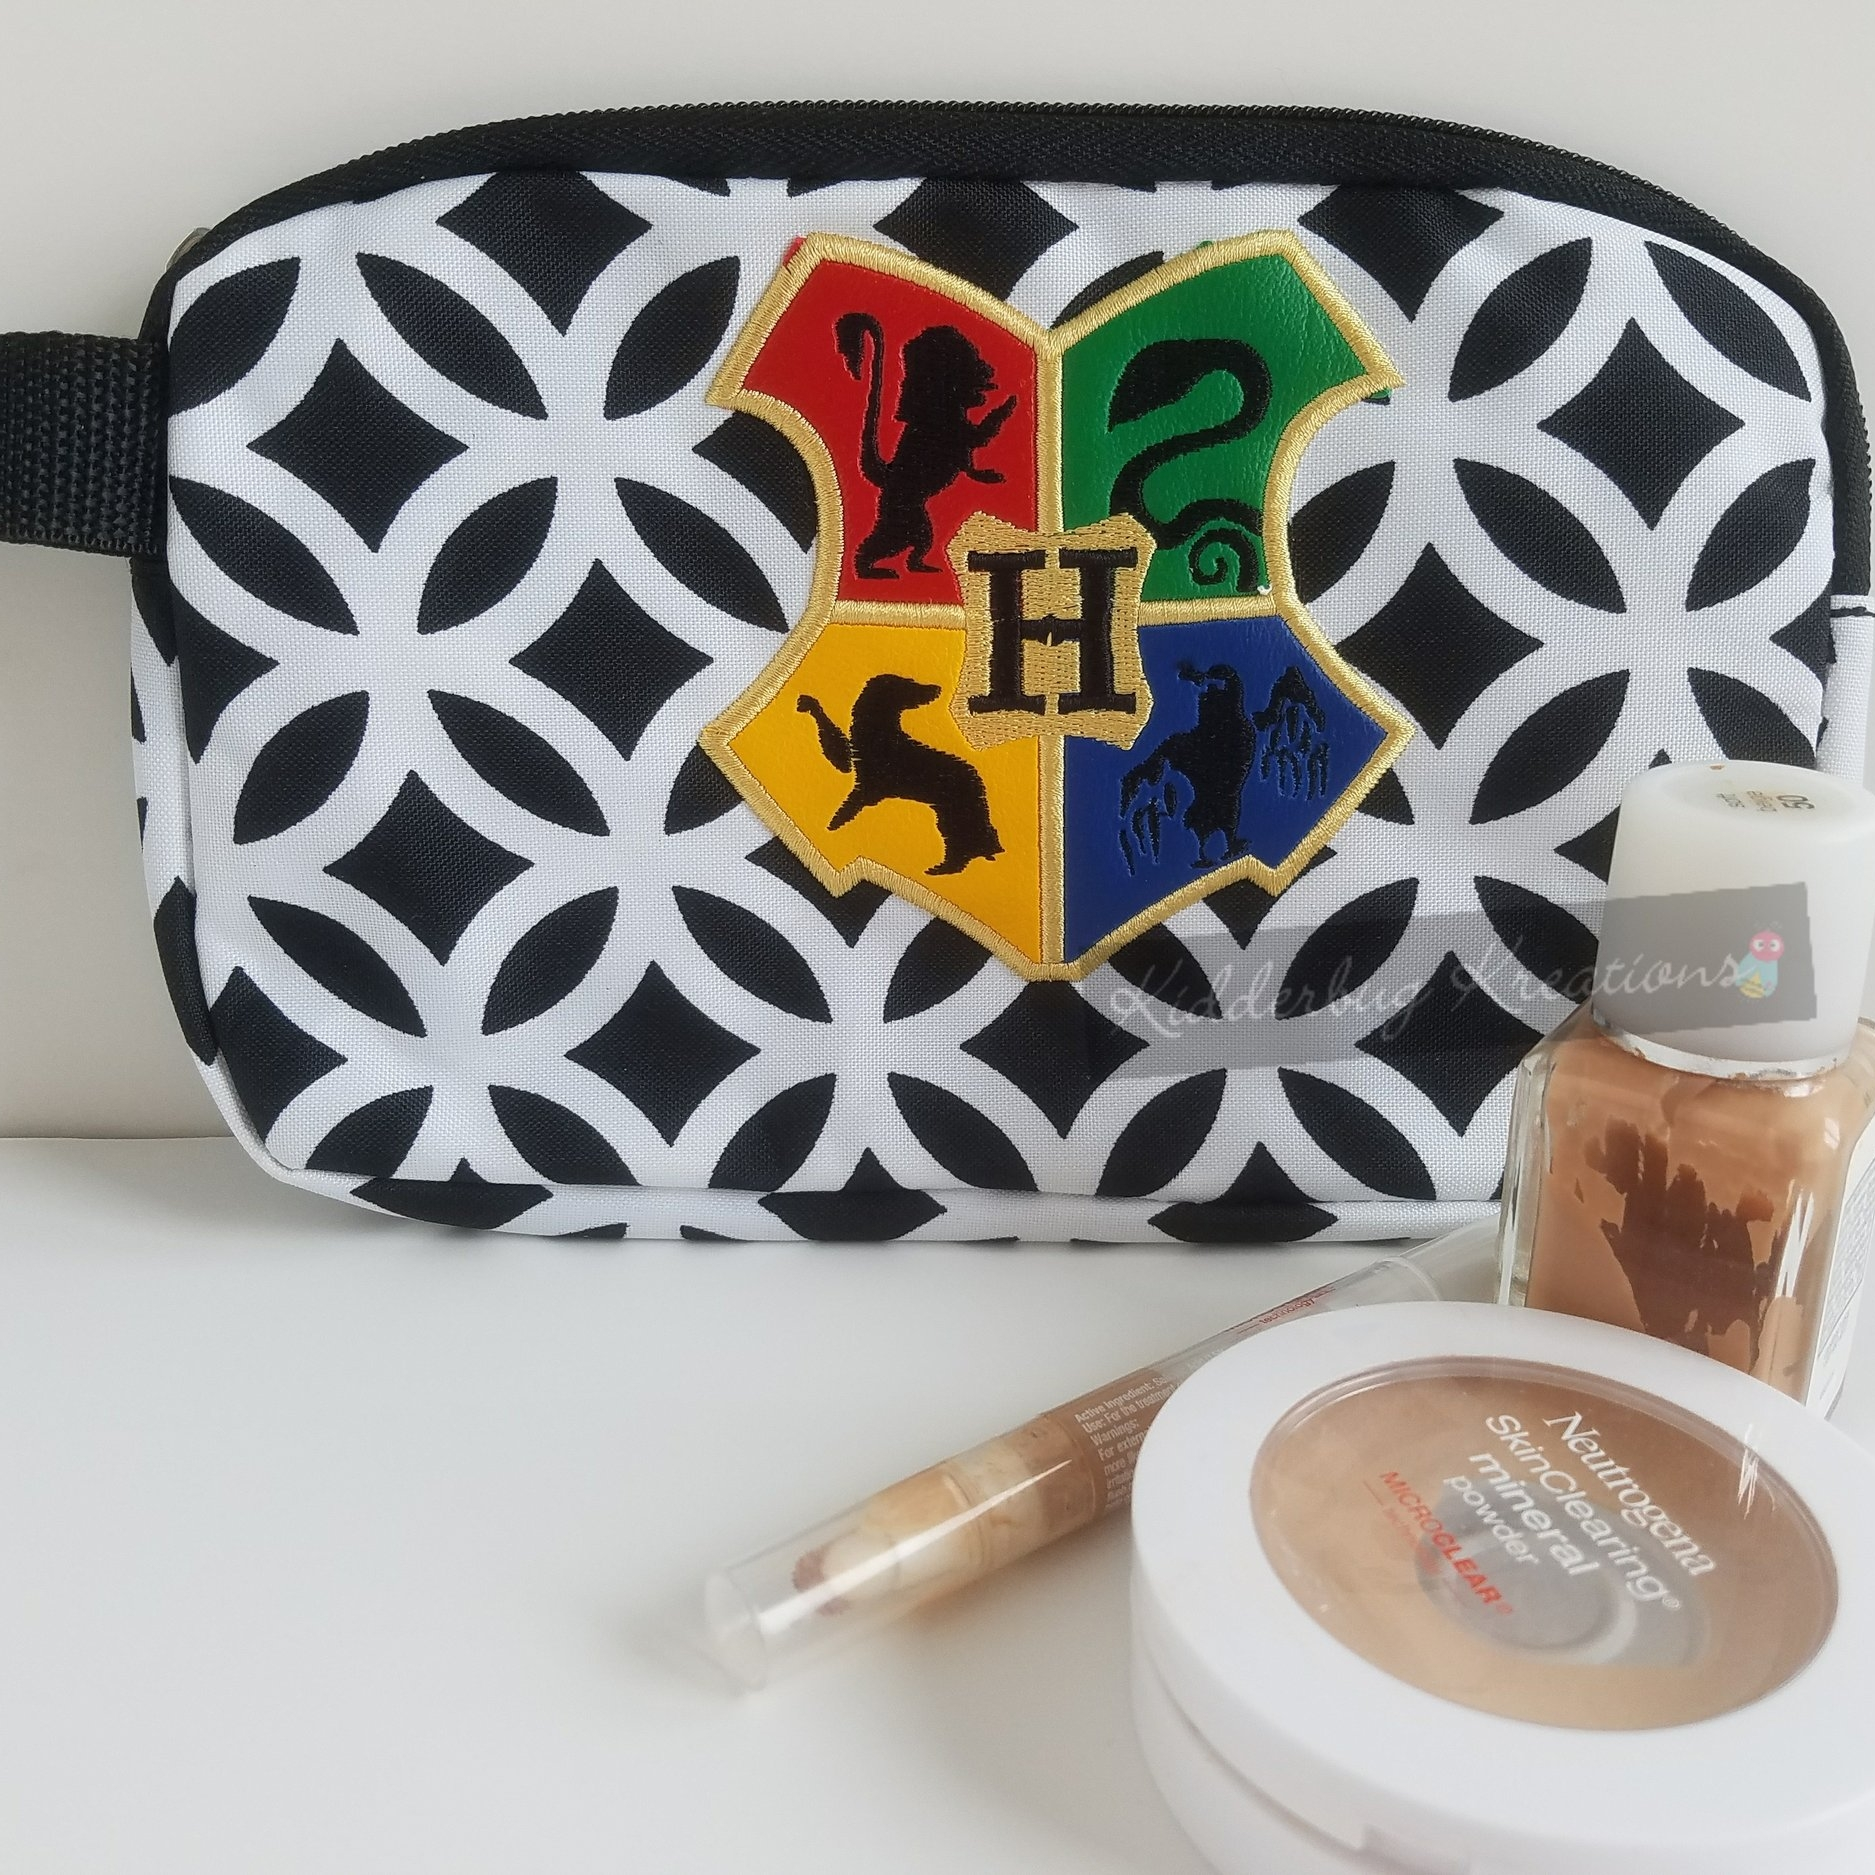 Cosmetic bag - Small enough to tuck your cosmetics safely in your travel bag yet cute enough to not have to hide it.